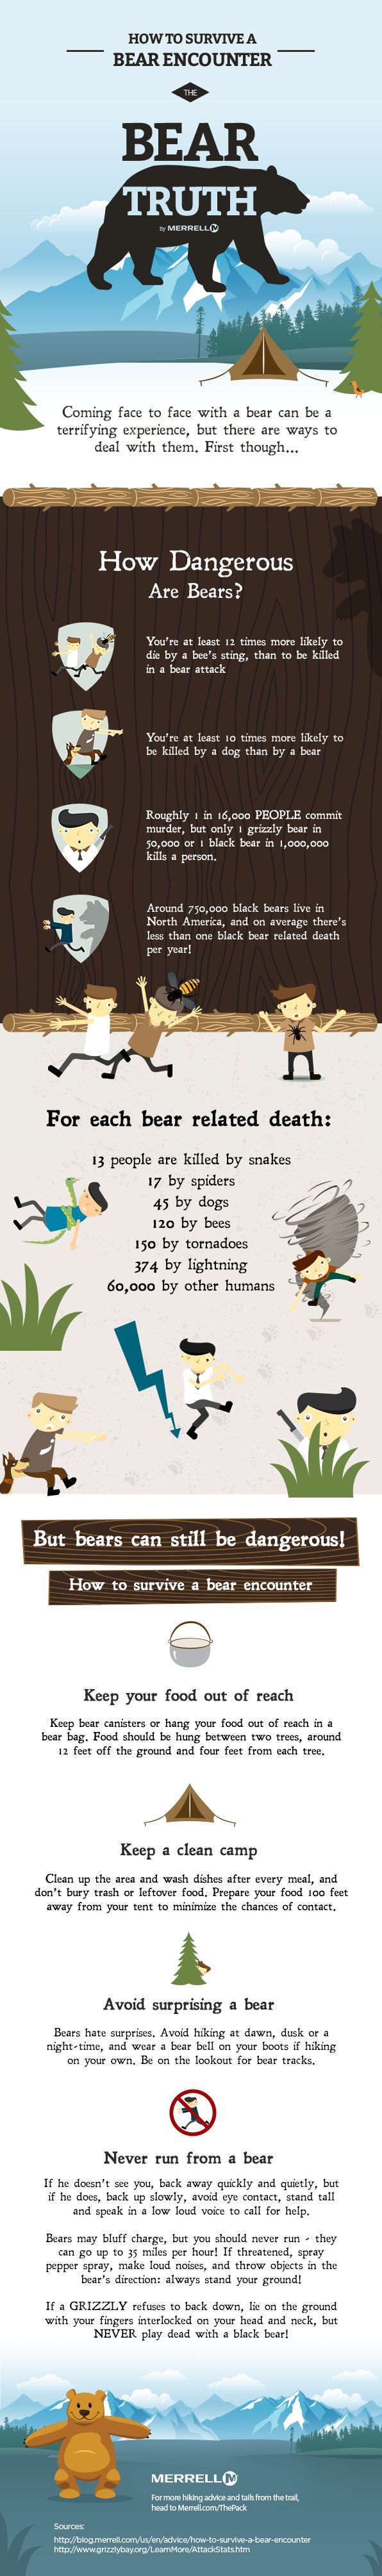 How to survive a bear encounter - an illustrated guide form The Merrell Pack